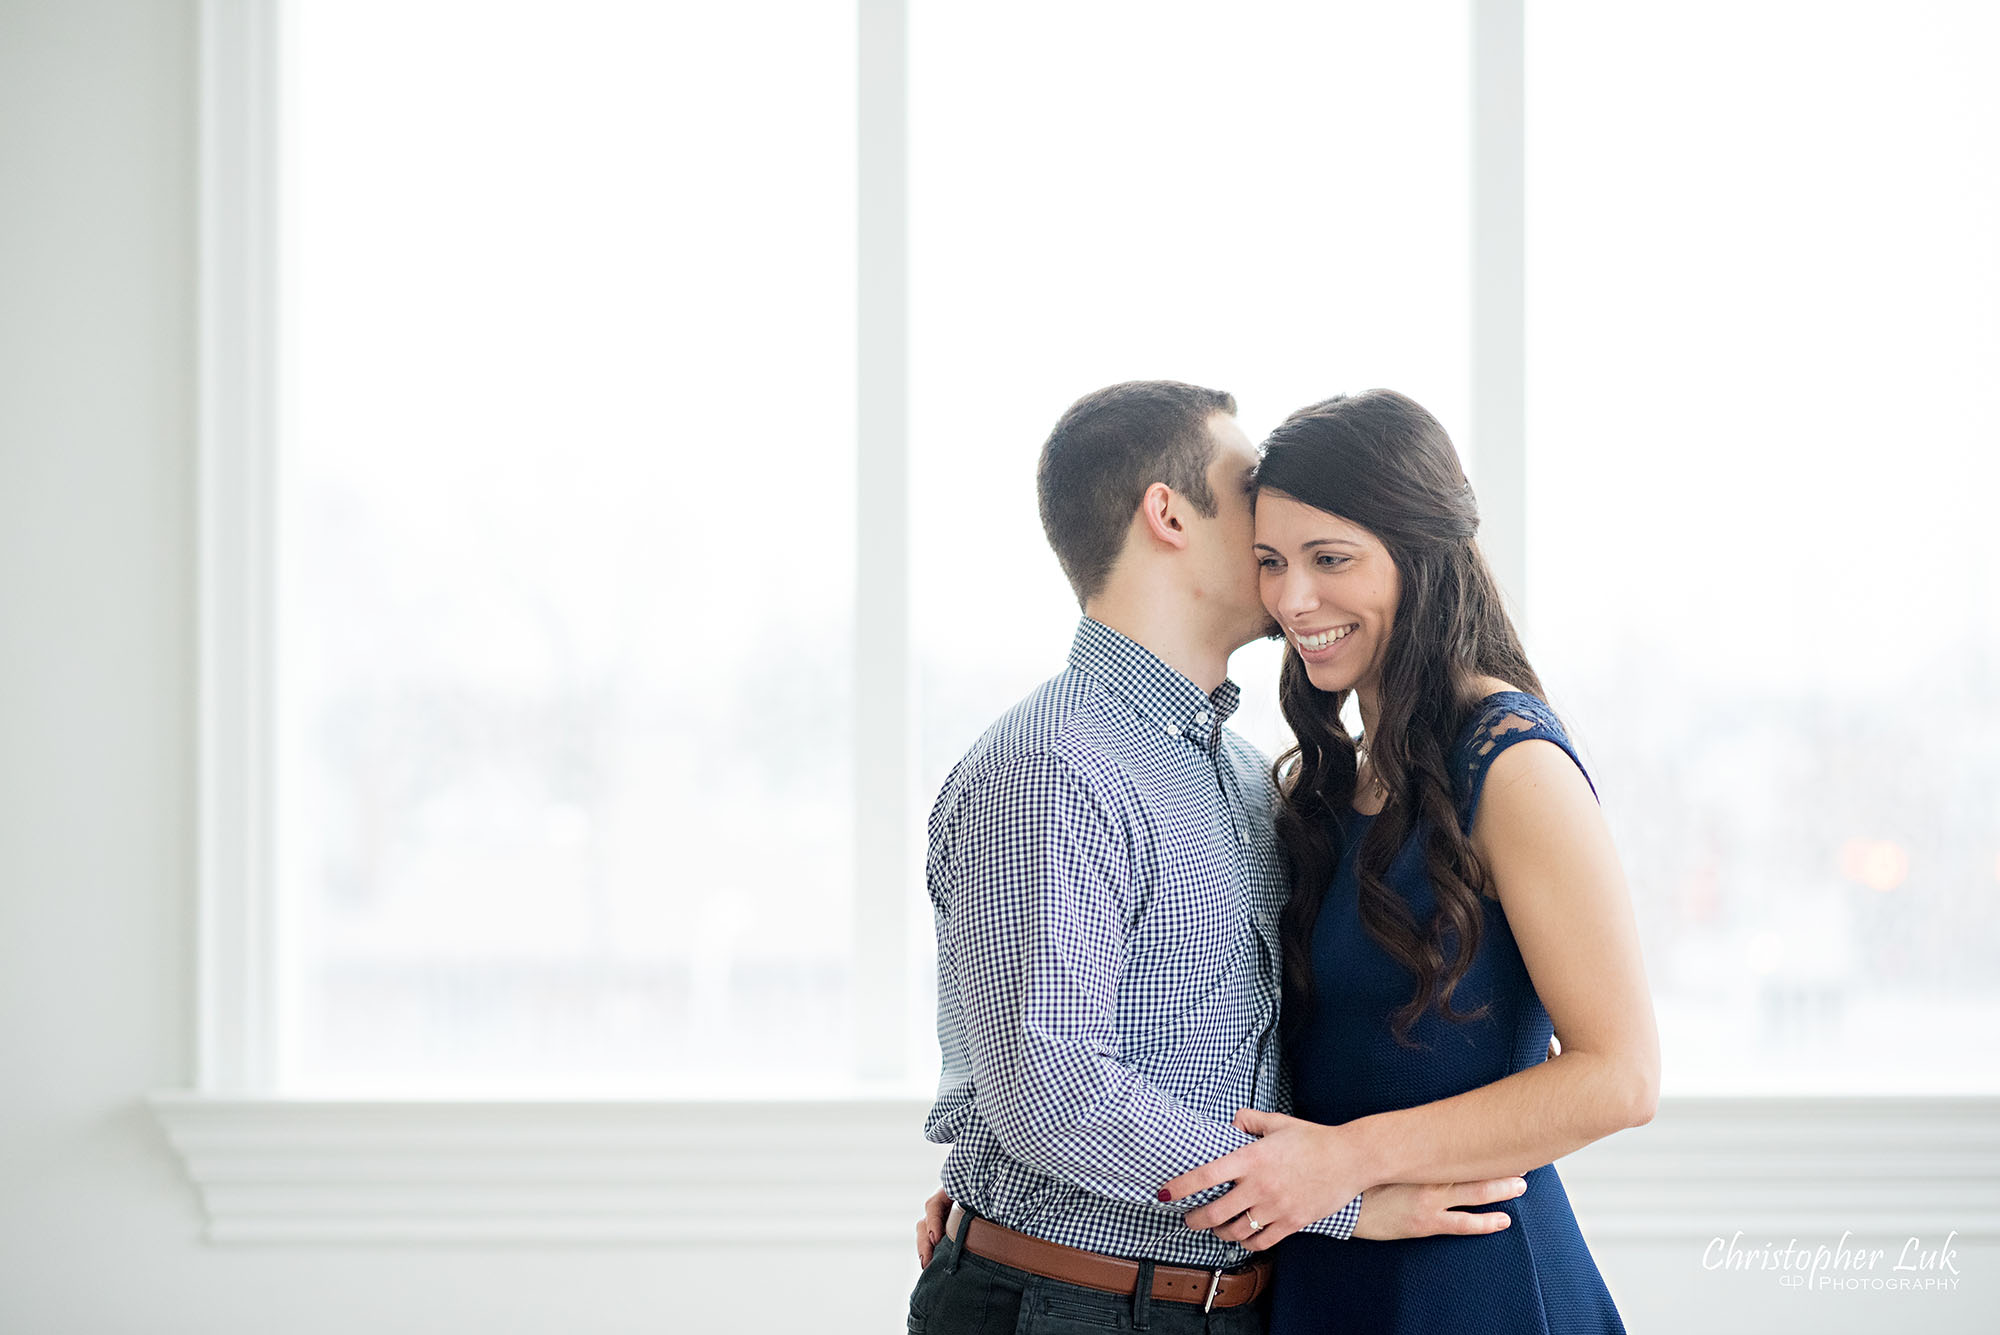 Christopher Luk Toronto Wedding Photographer Mint Room Studios Conservatory Engagement Session Winter Indoor Natural Light Candid Photojournalistic Bride Groom Hug Hold Whisper Smile Cute Adorable